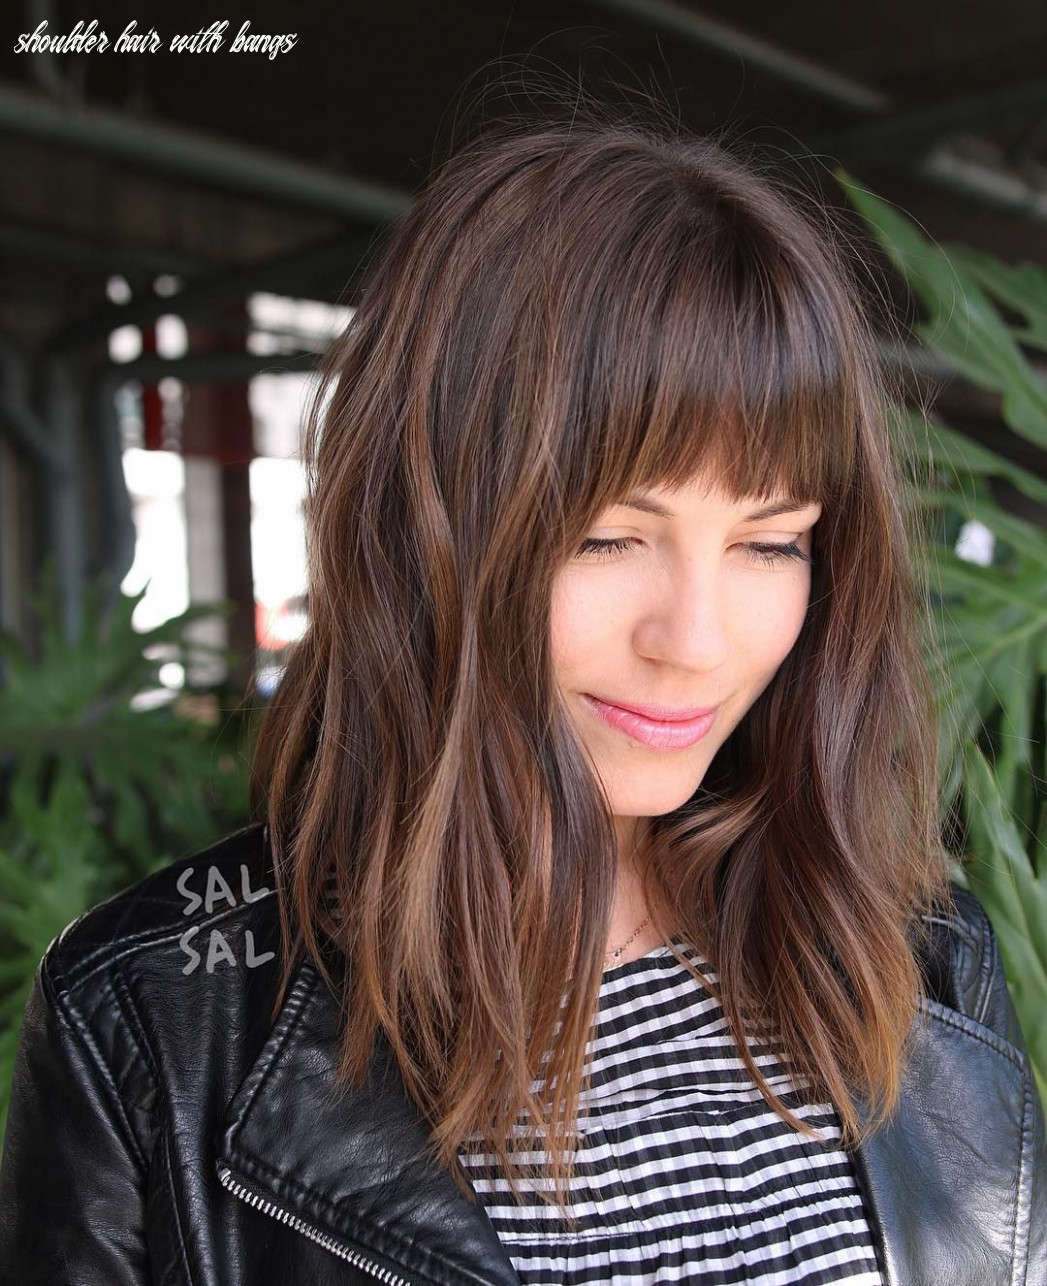 Pin on bobs & mid length cuts shoulder hair with bangs